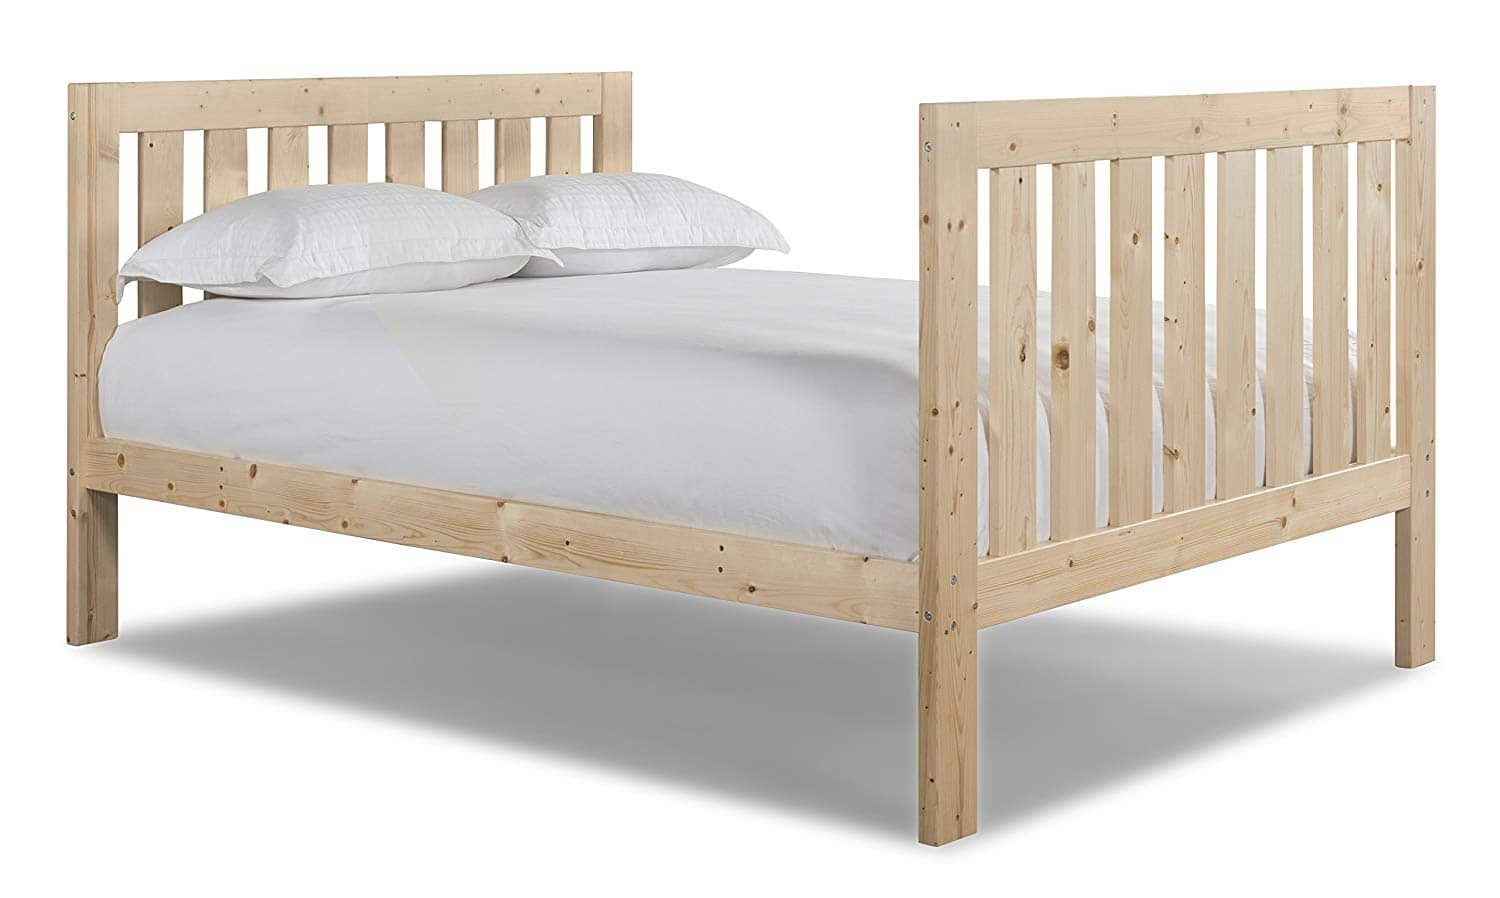 Canwood Lakecrest Full Bed - Natural $99.99